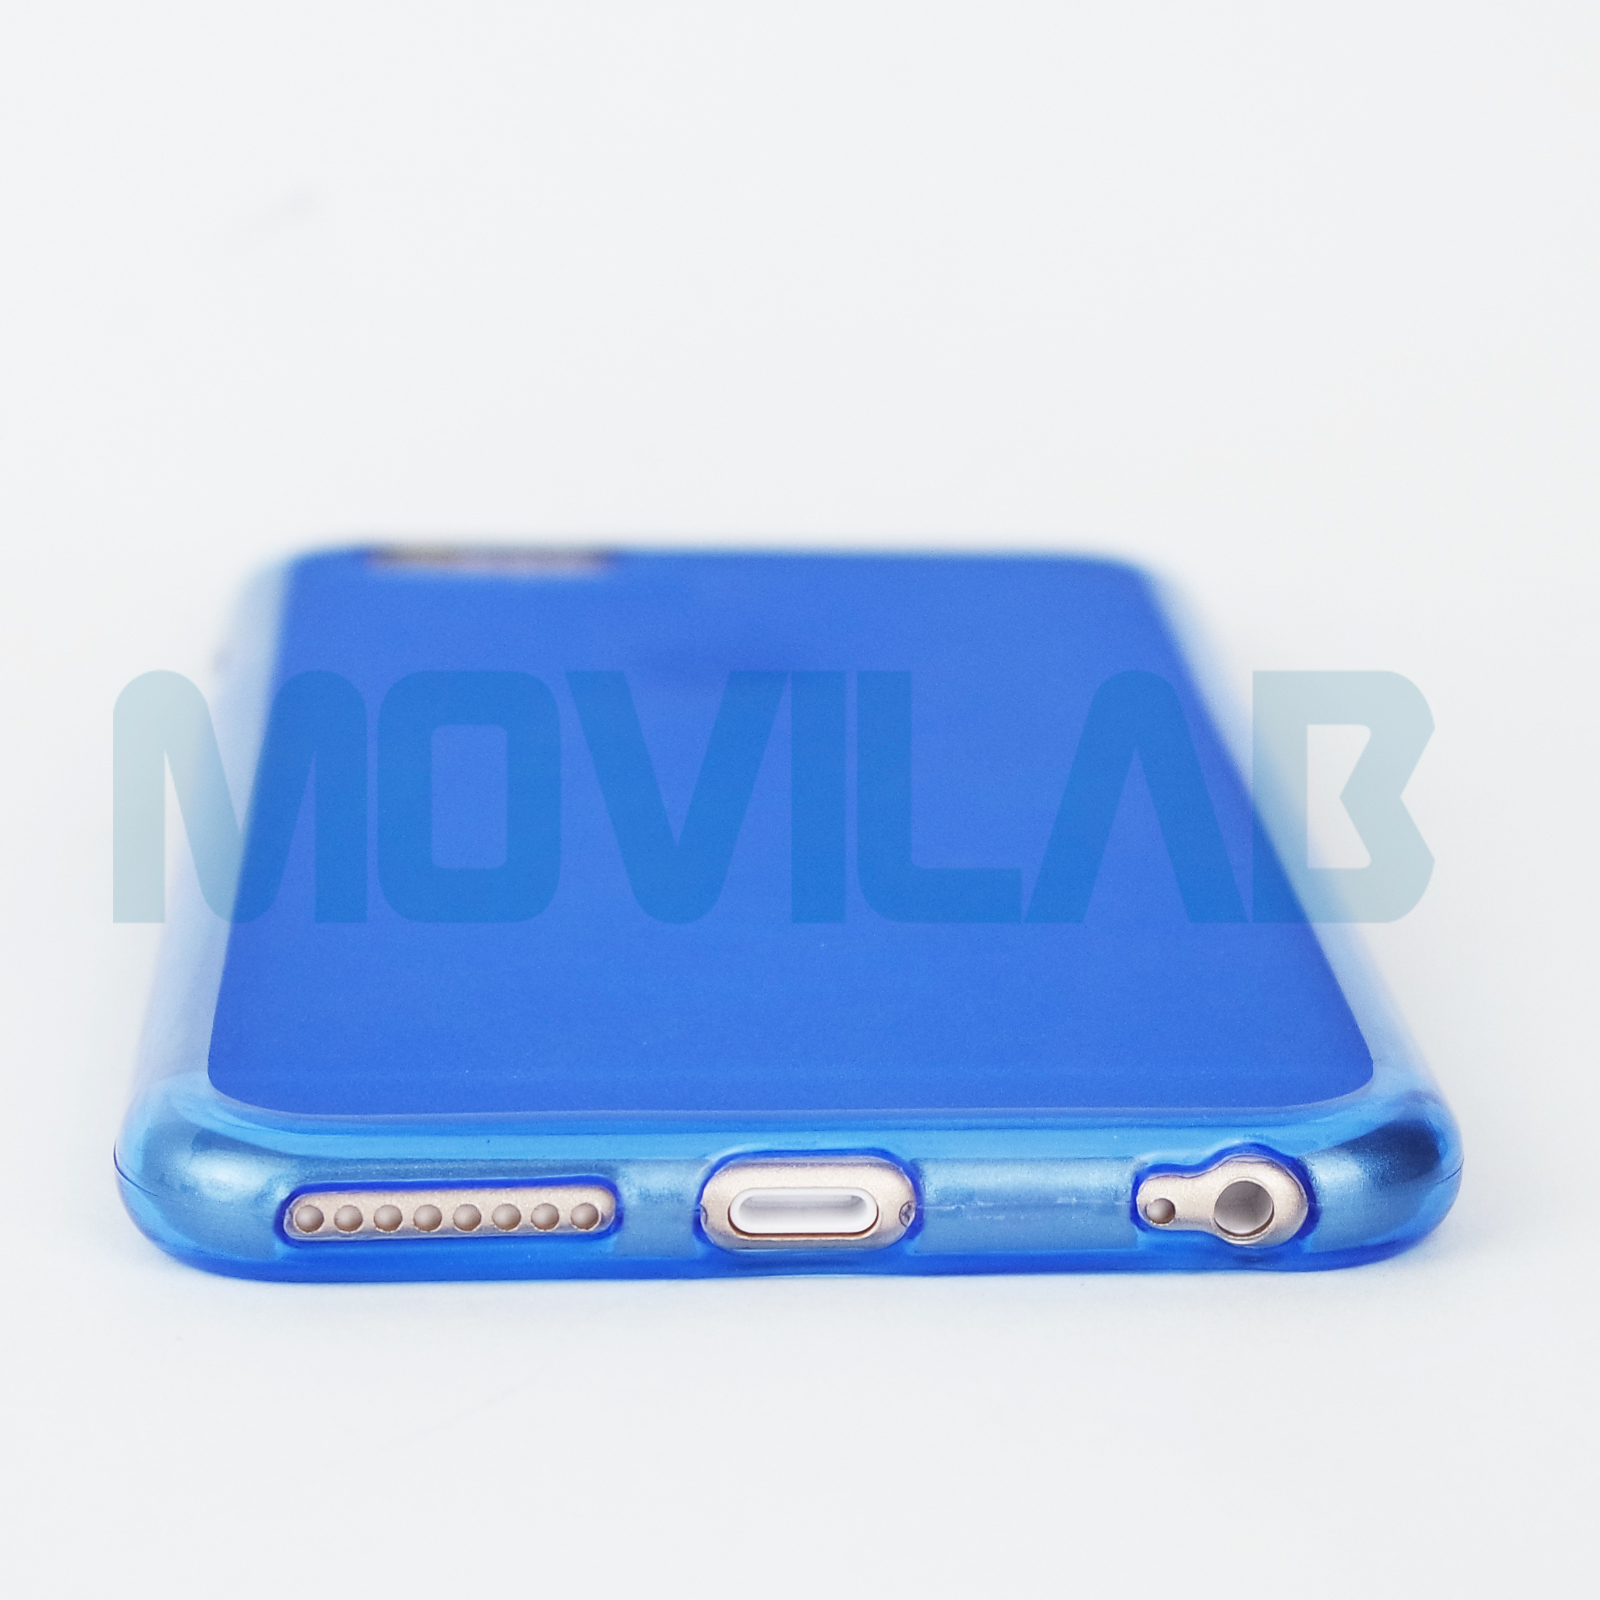 Funda Iphone 6 Plus azul conectores